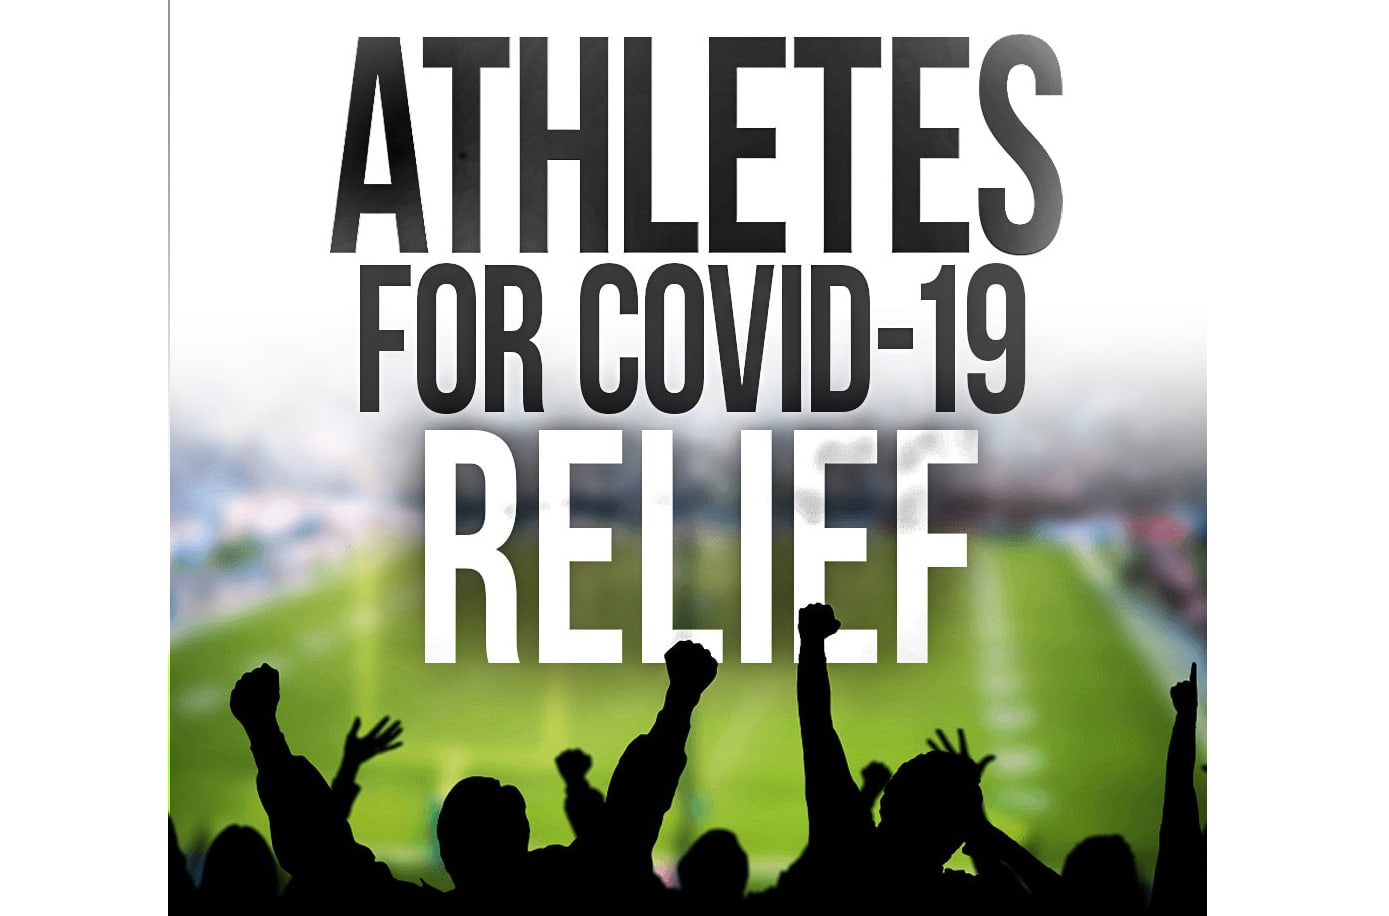 Athletes team up to raise money for people affected by coronavirus